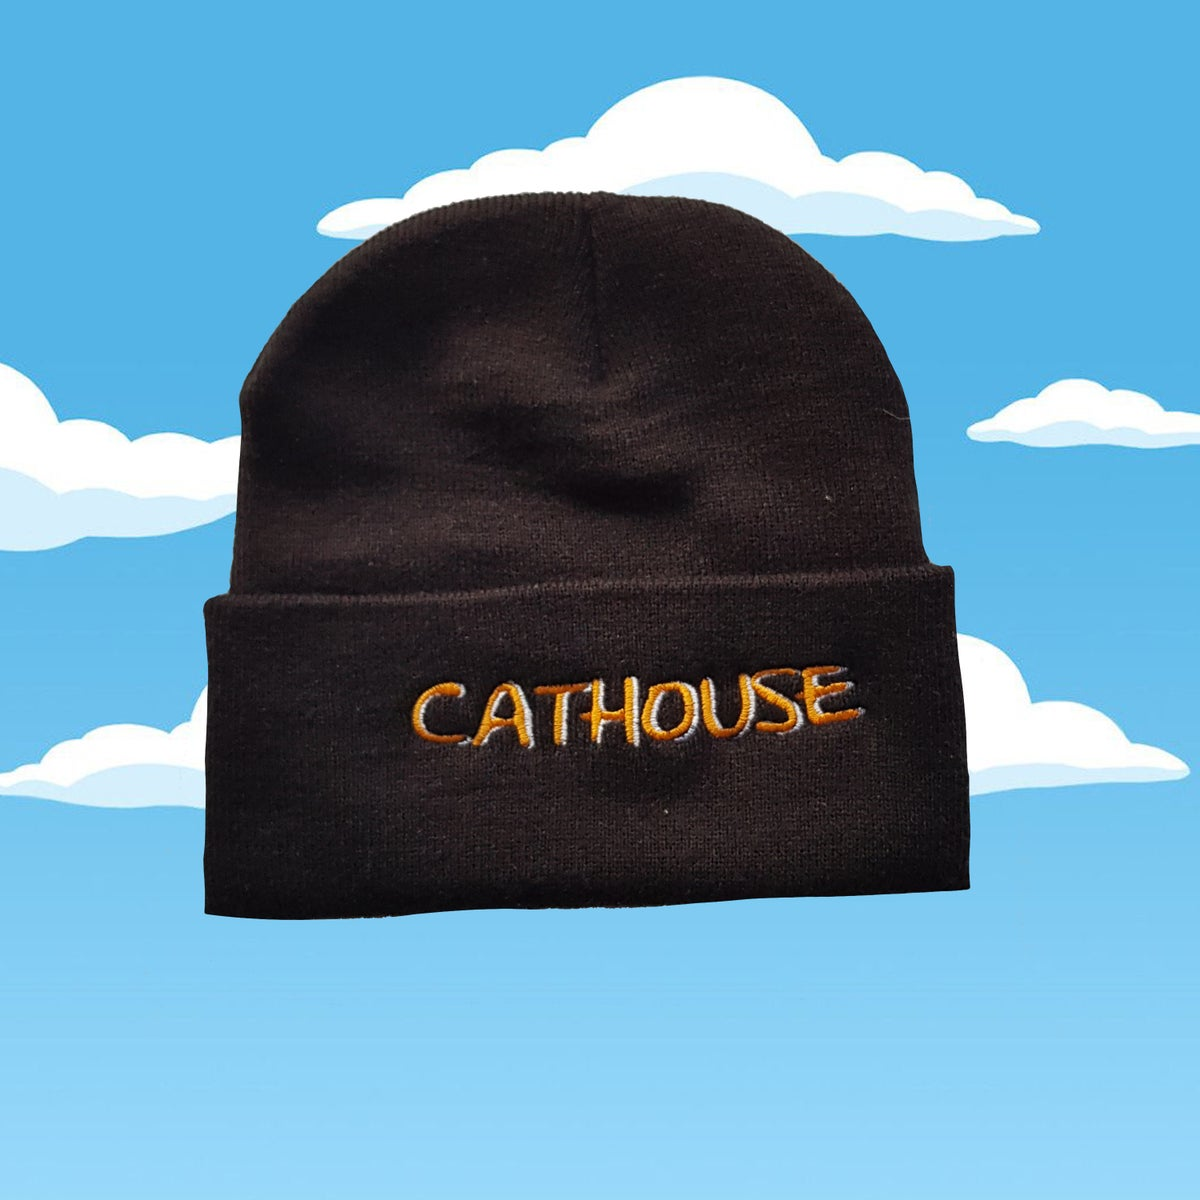 Image of Scratchouse Beanie